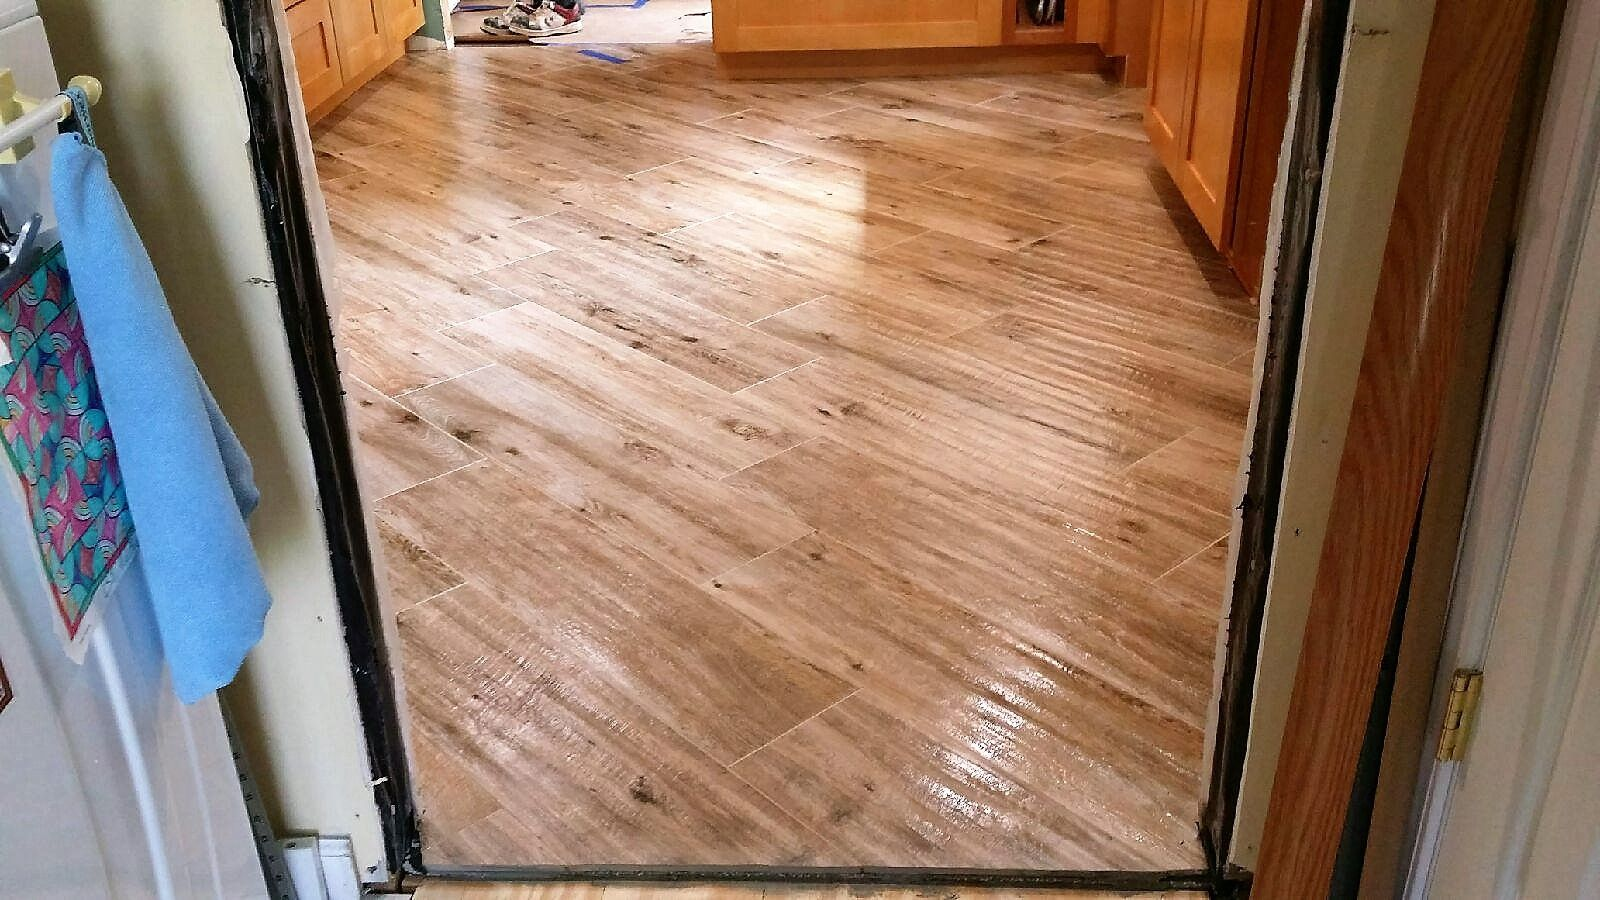 Marazzi American Estates 6 X 36 Natural Wood Tile Plank Paired With